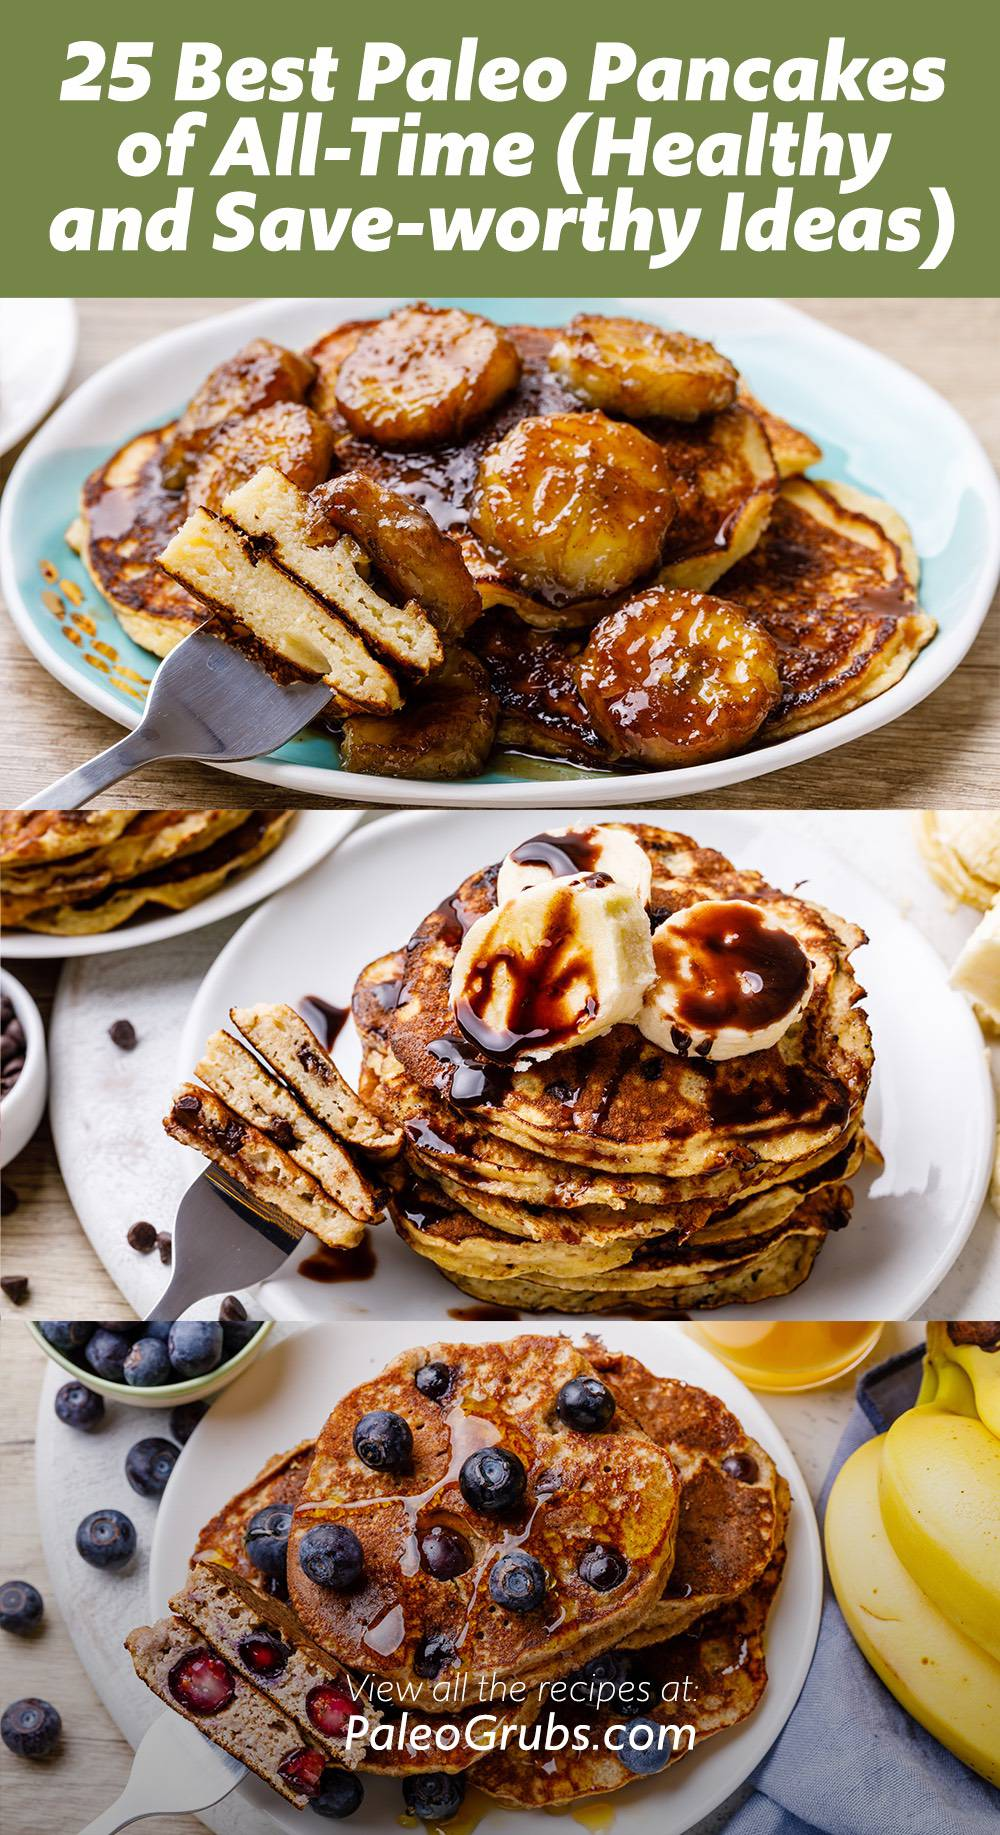 25 Best Paleo Pancakes of All-Time- a must-read for pancakes lovers.